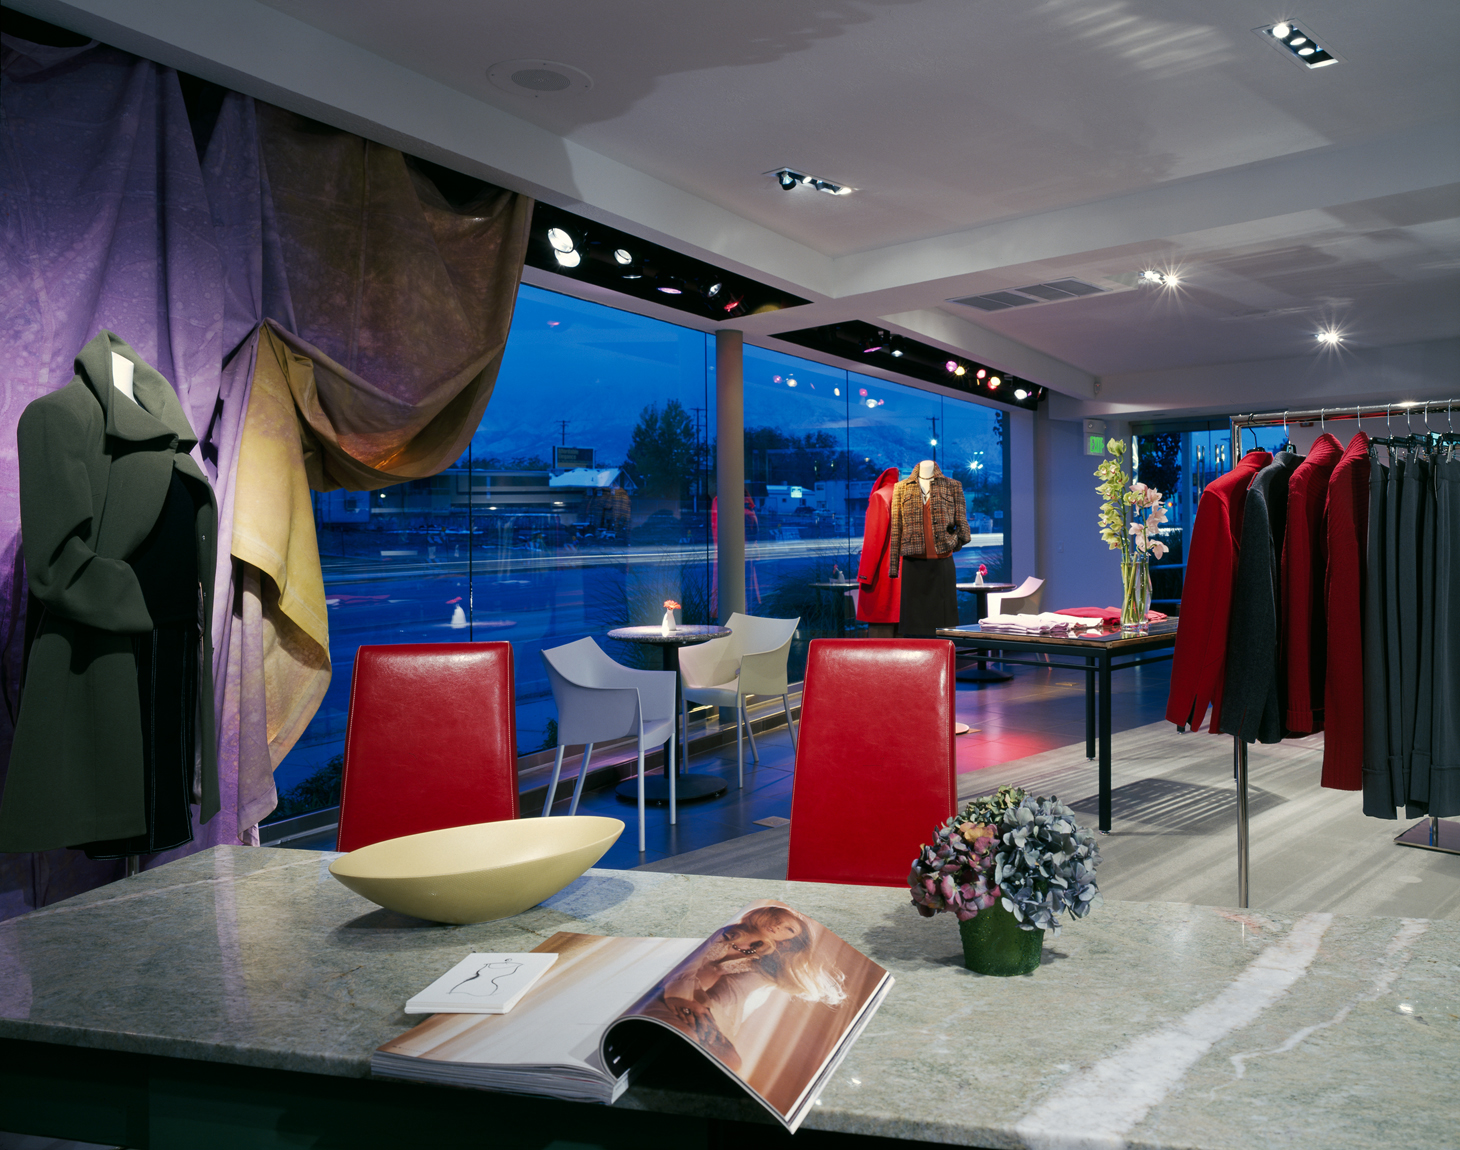 Interior view looking itowards the street in an  upscale clothing boutique at dusk with cool, blue exterior and warm interiors.Architectural Photography by: Paul Richer / RICHER IMAGES